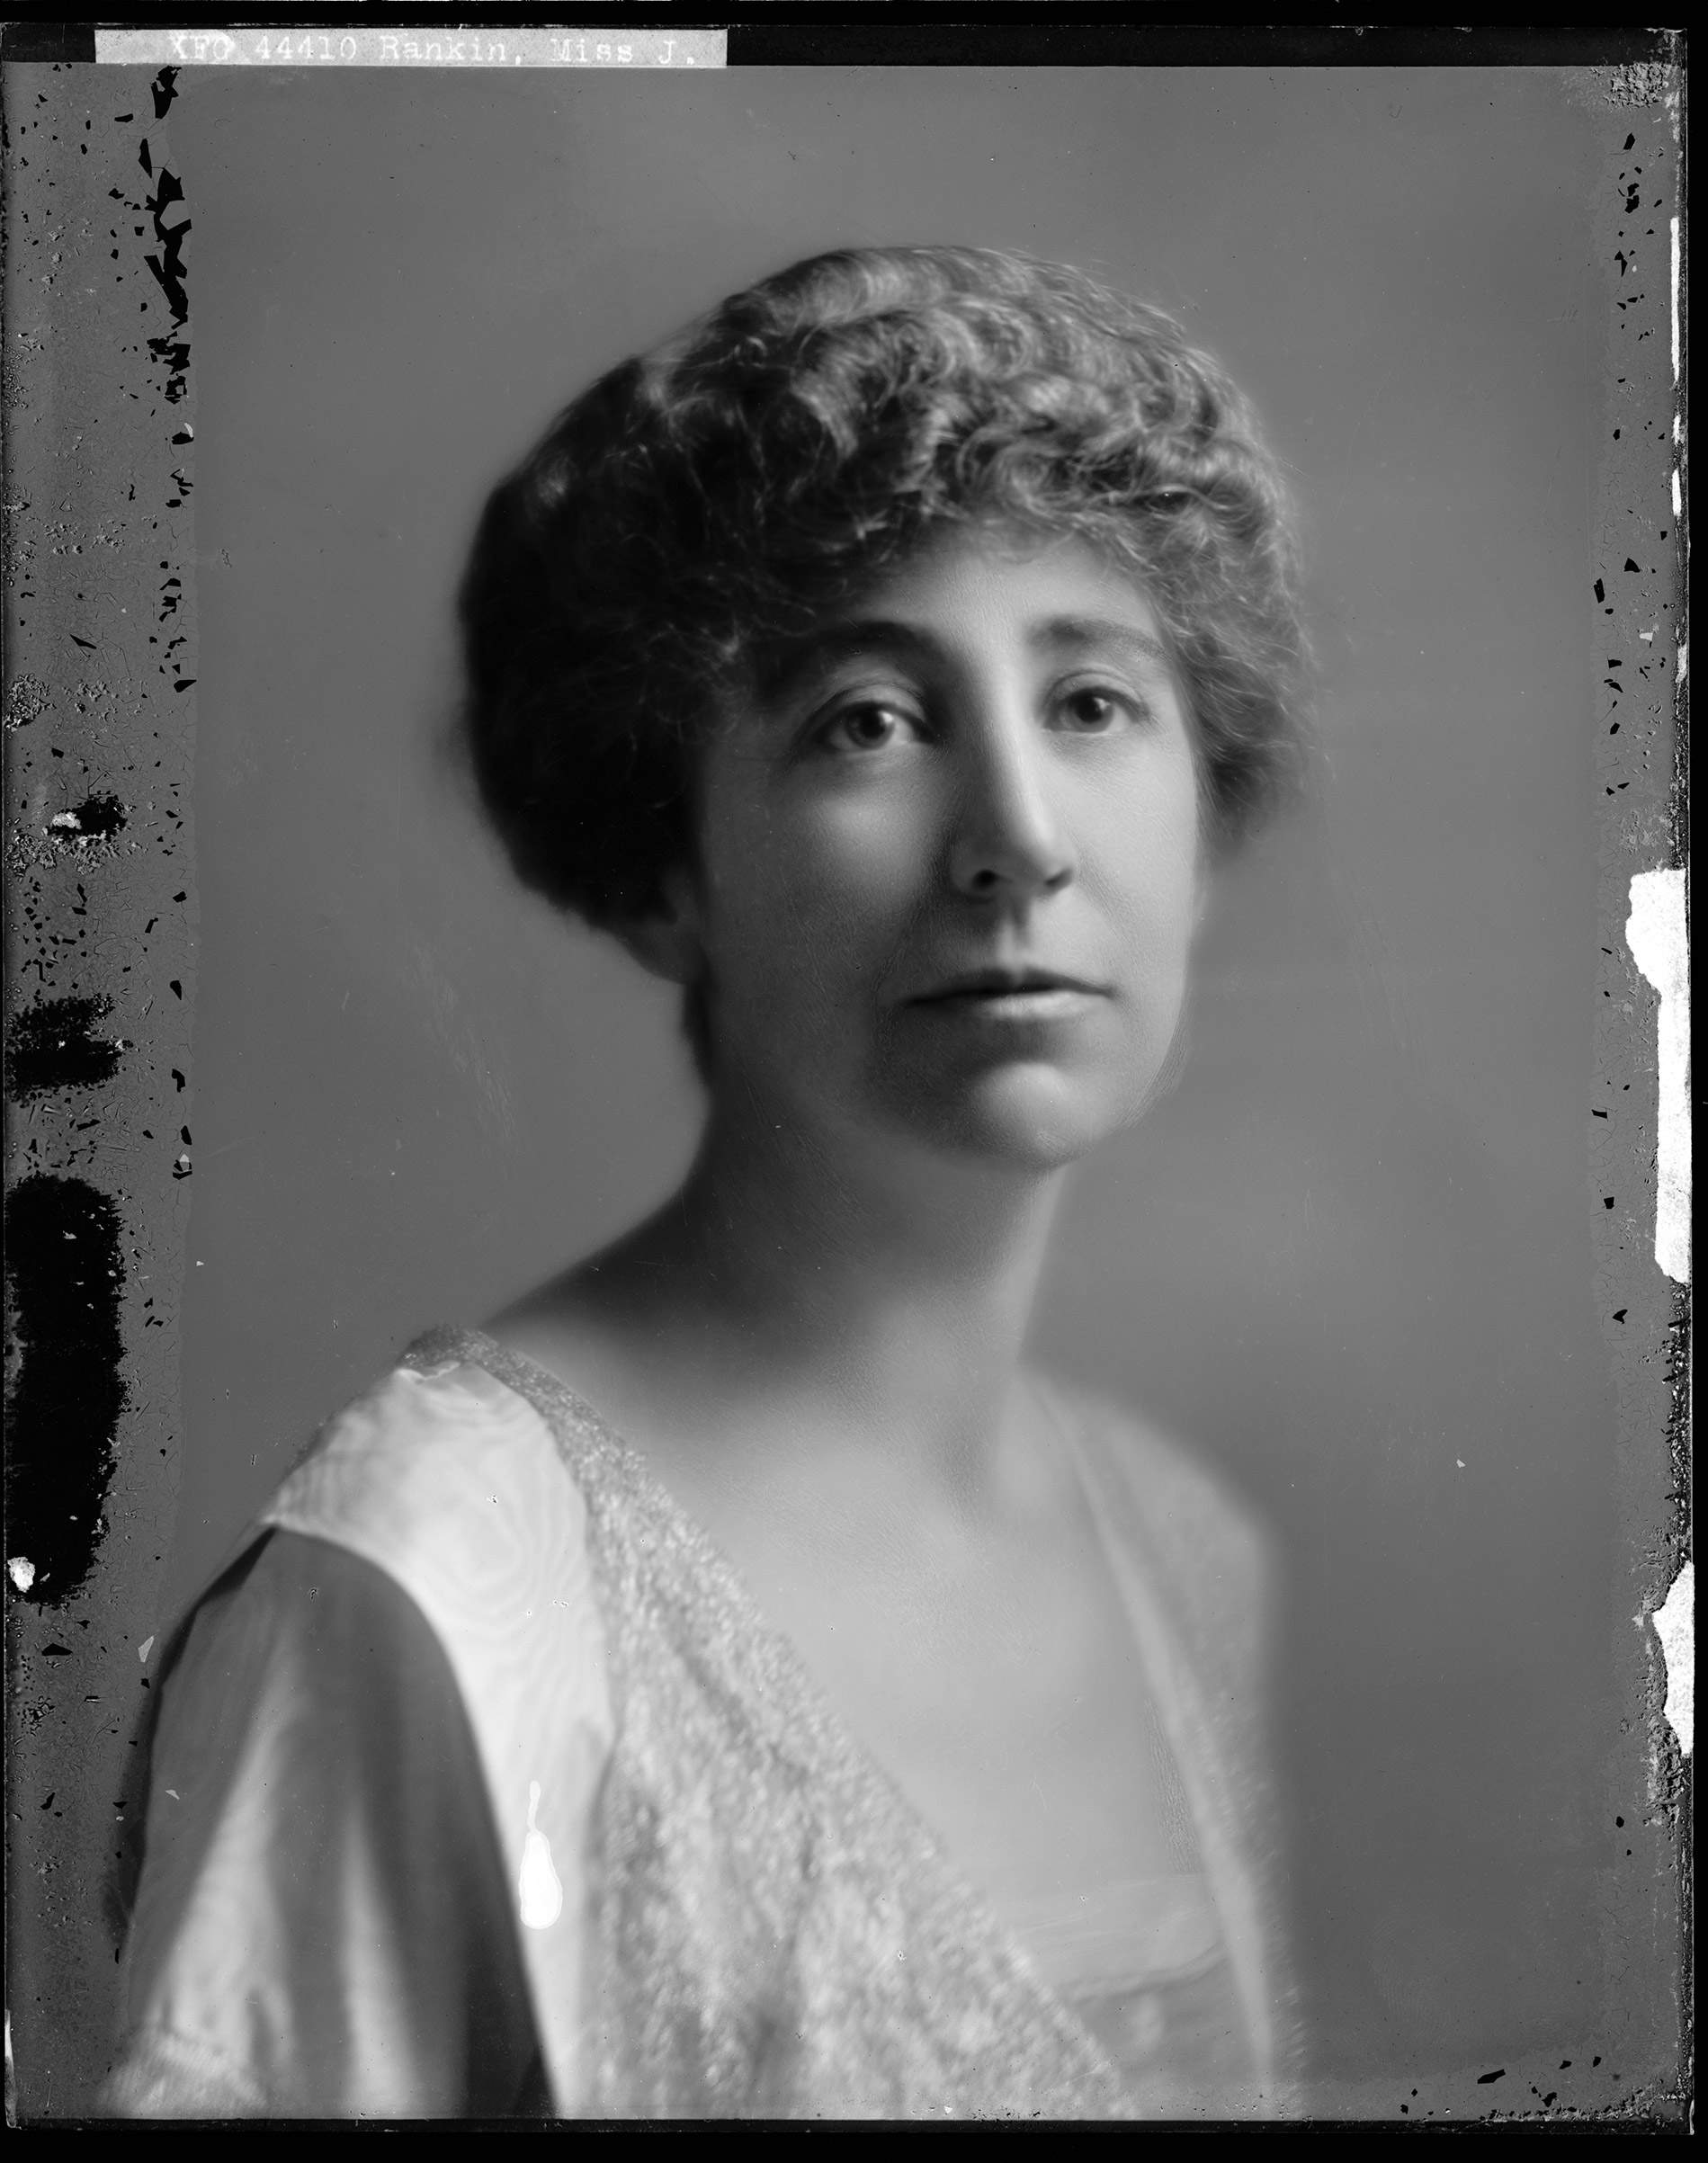 JEANNETTE RANKIN became the first woman to be elected to Congress in 1916 (representing Montana).